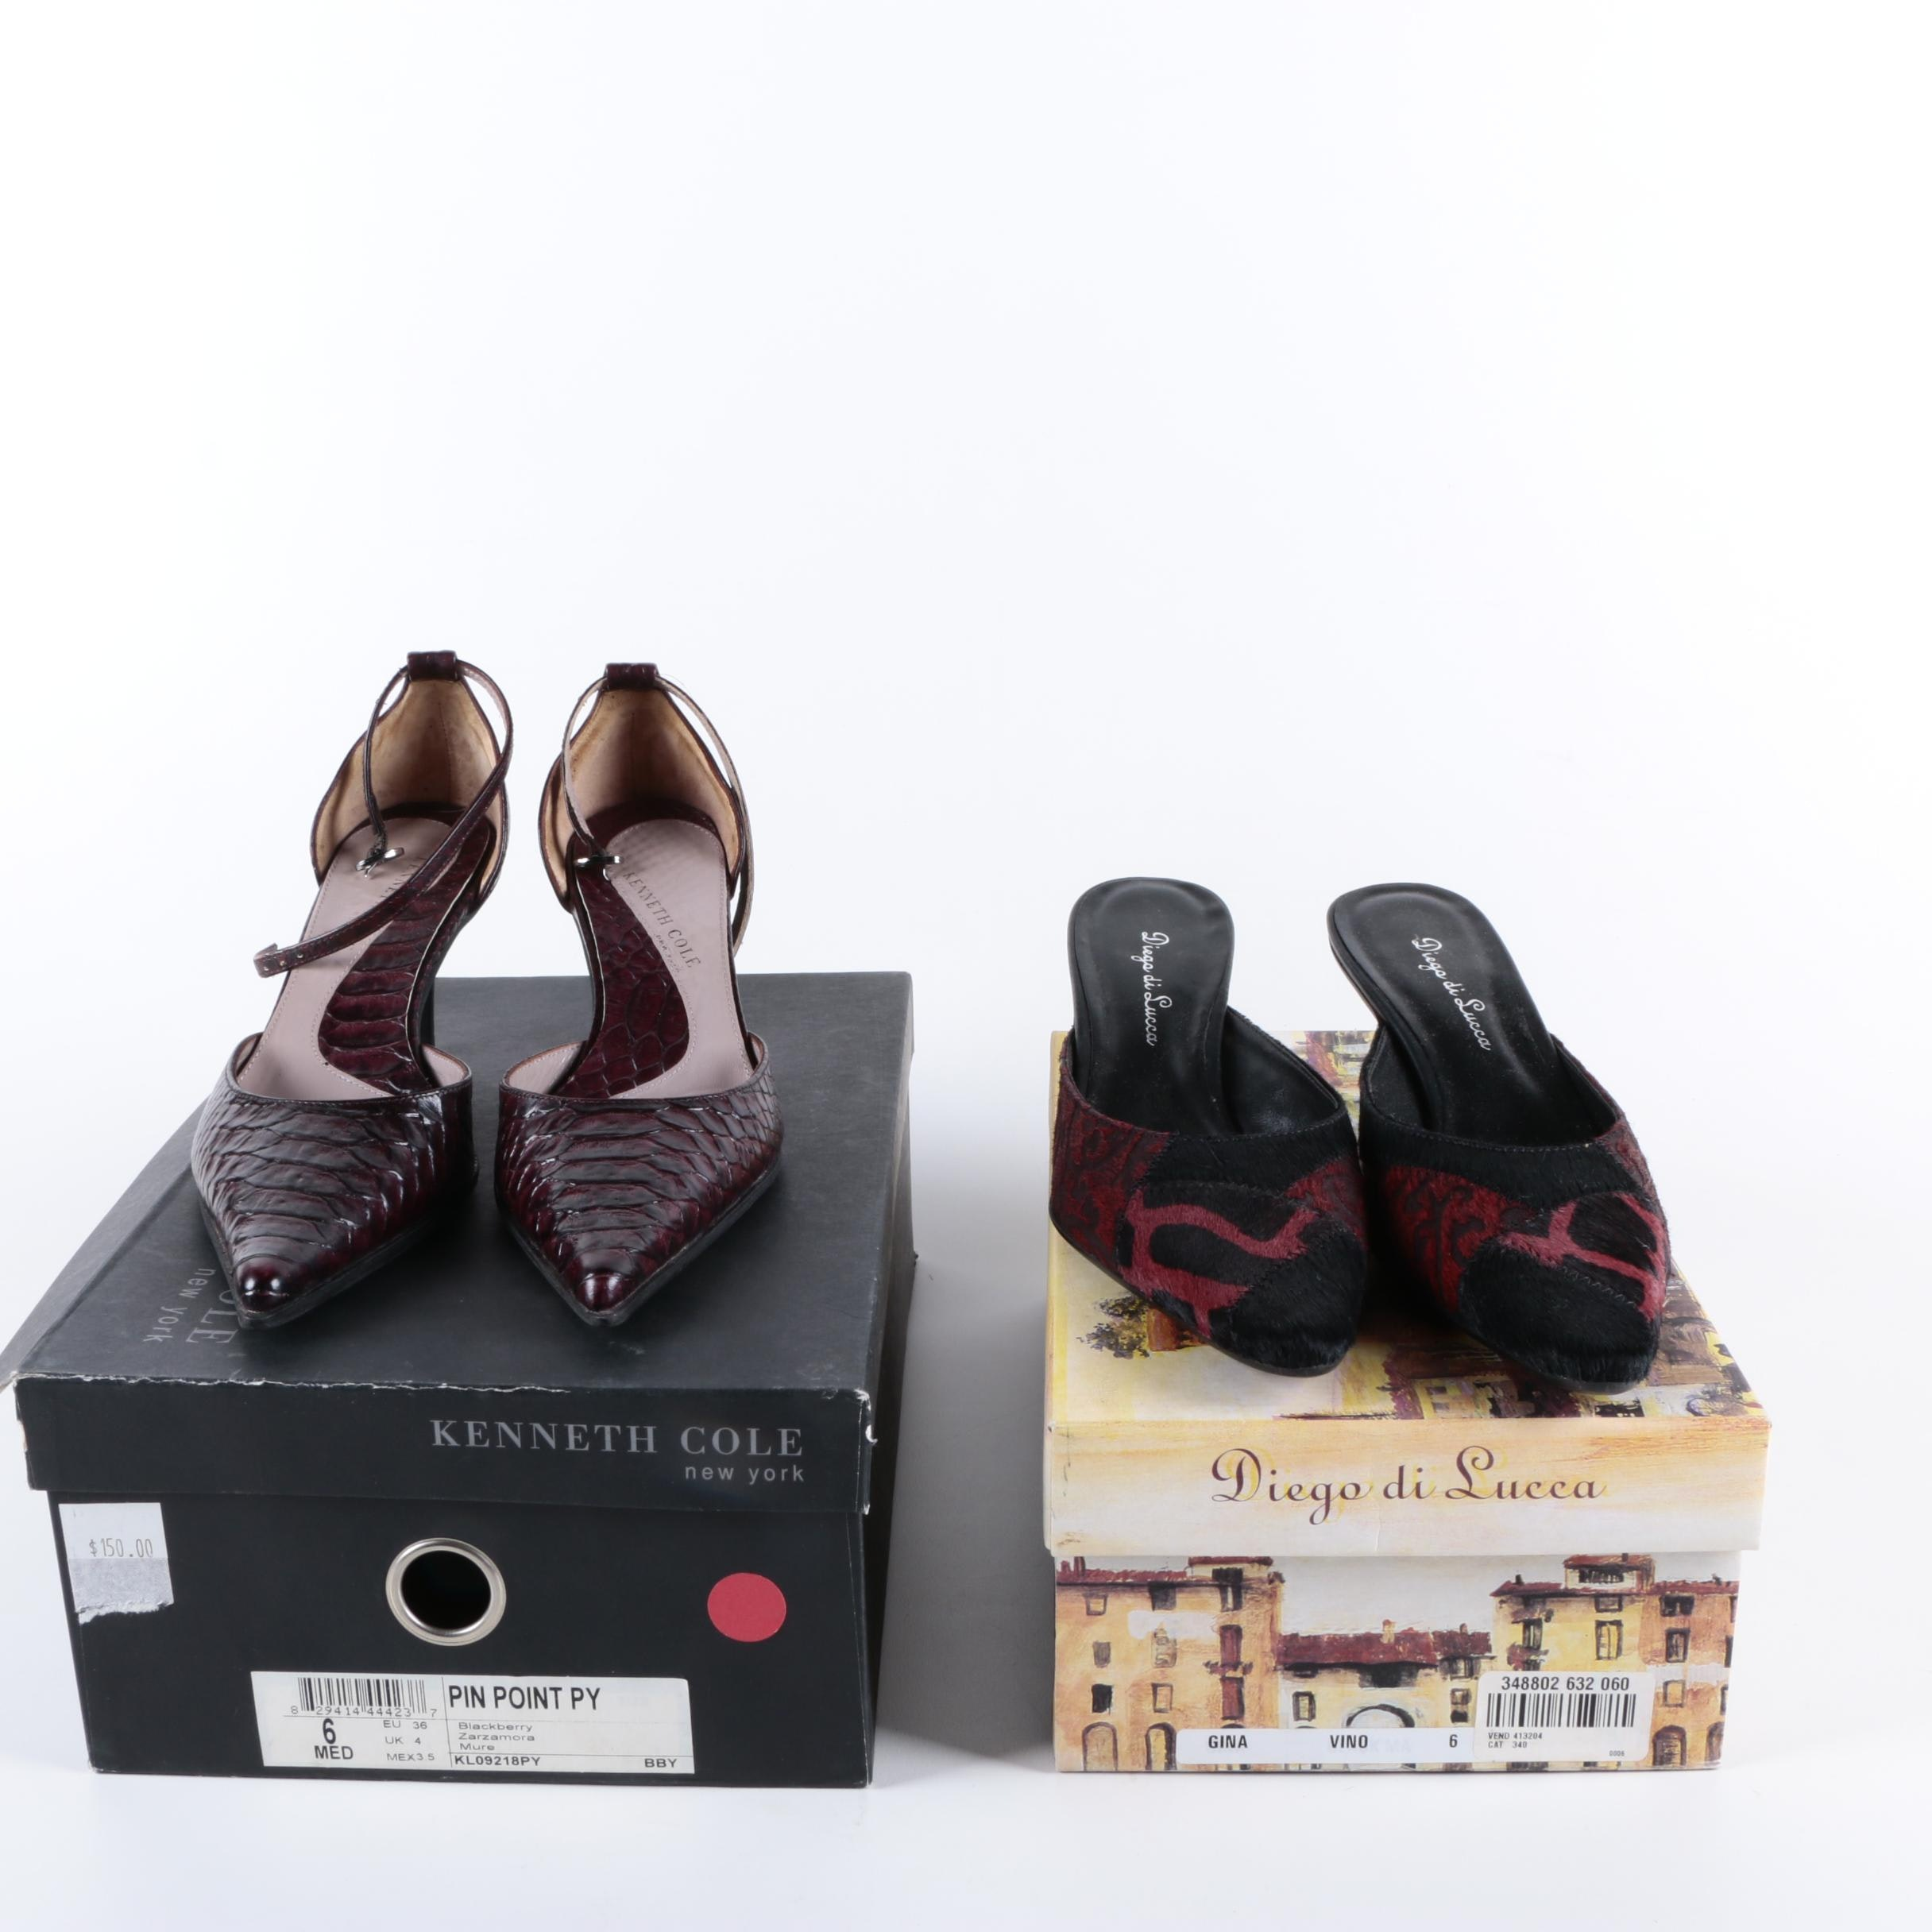 Women's High Heels Including Kenneth Cole